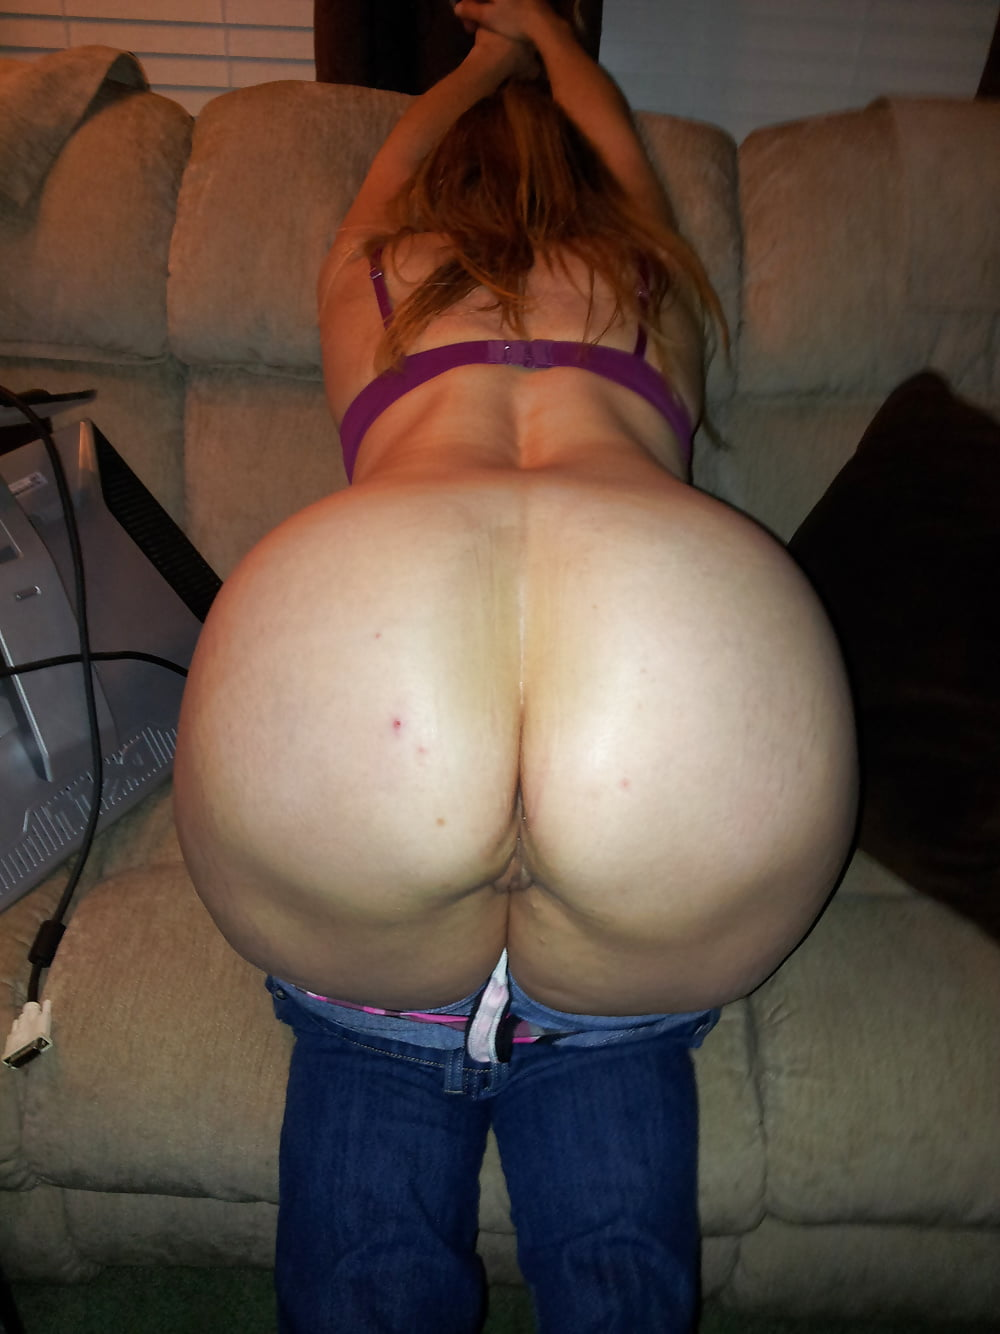 wife-big-ass-pictures-young-girls-fugking-there-s